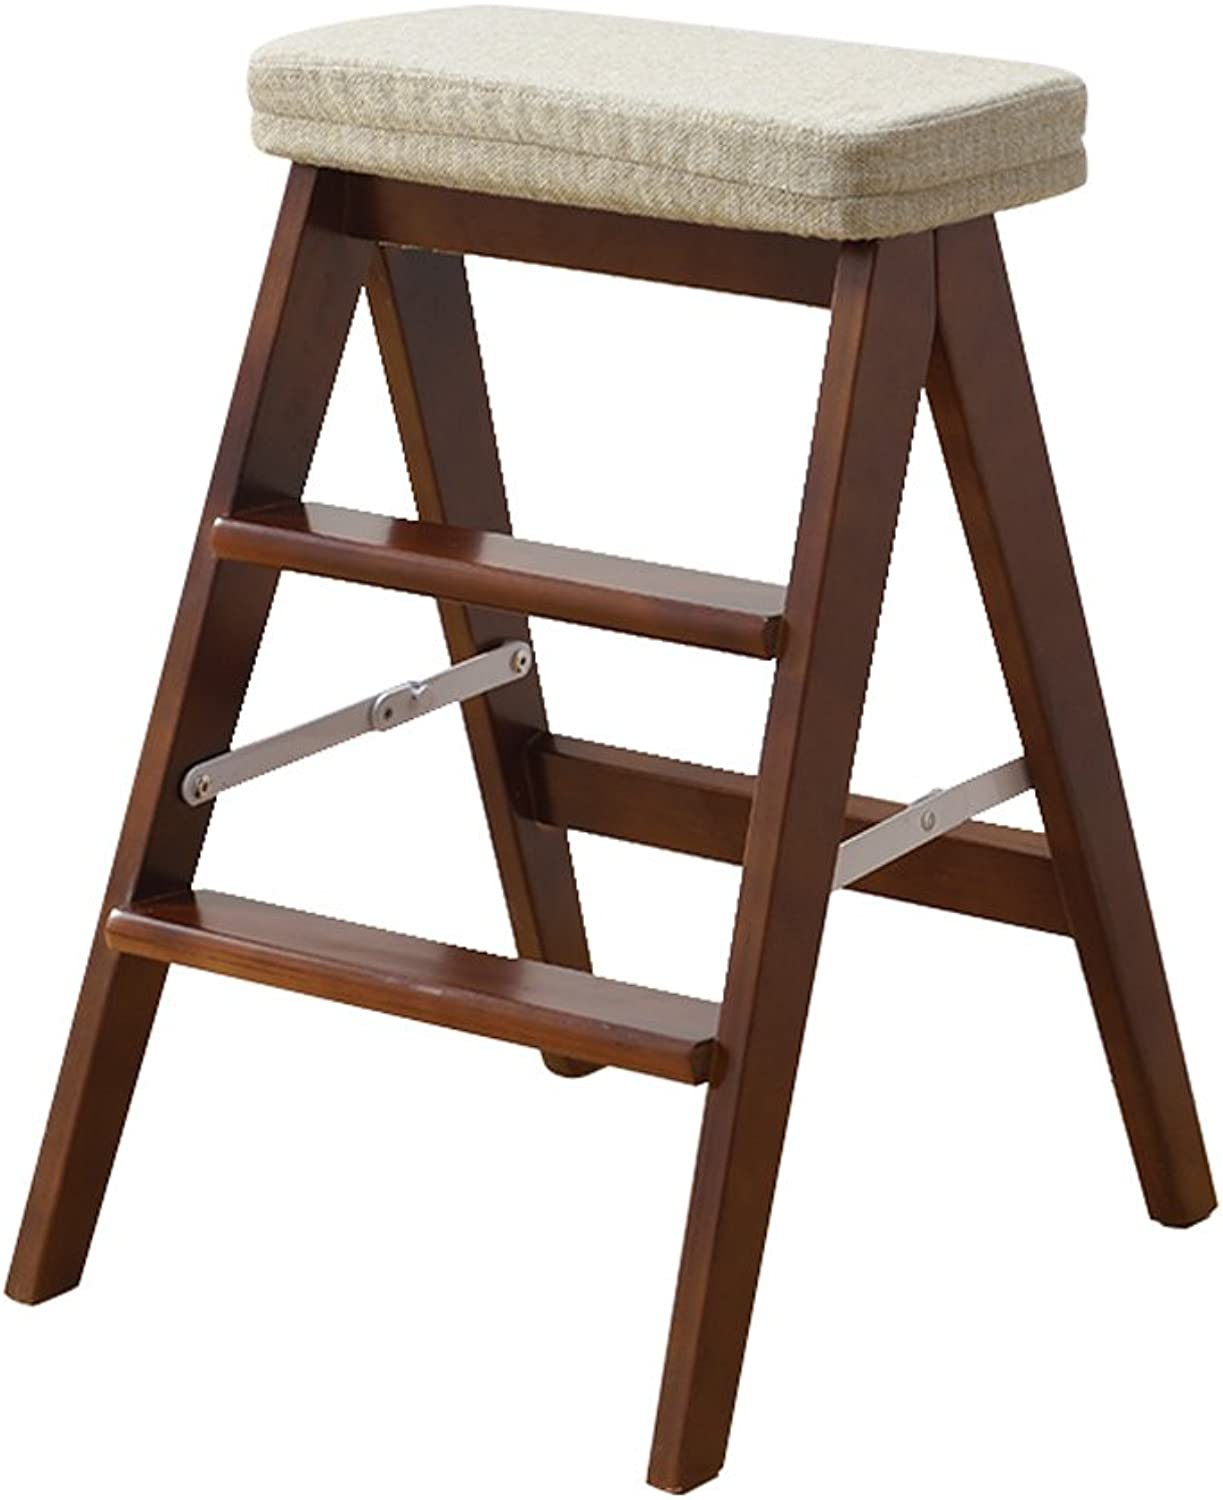 Solid Wood Folding Stool Home Ladder Stool Simple and Modern Portable Folding Stool Multifunctional Kitchen high Stool Furniture (color   H, Size   424864cm)